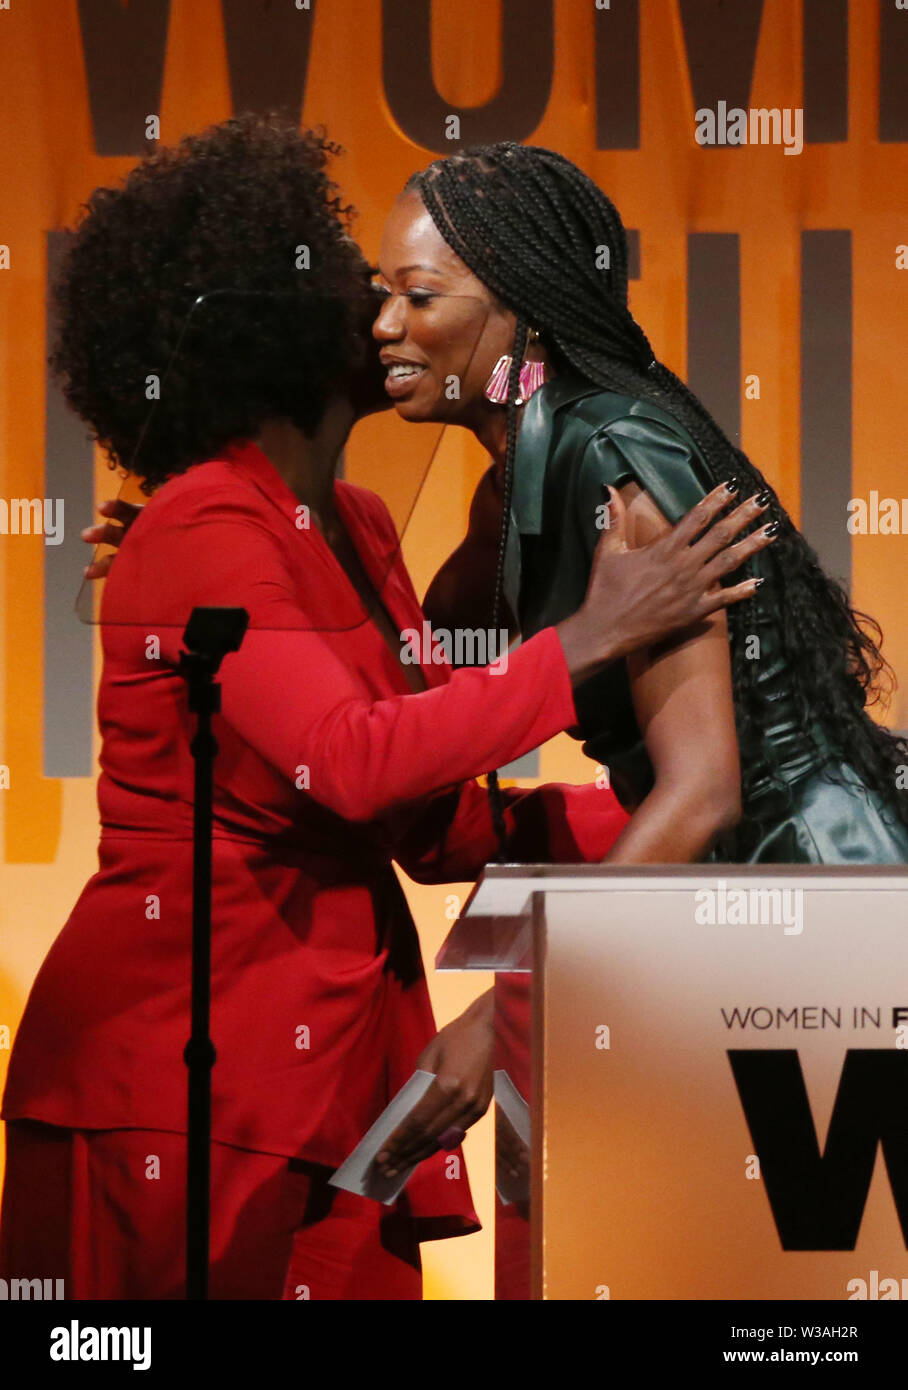 Women In Film Annual Gala 2019 Presented By Max Mara_Show Featuring: Viola Davis, Xosha Roquemore Where: Beverly Hills, California, United States When: 12 Jun 2019 Credit: FayesVision/WENN.com - Stock Image